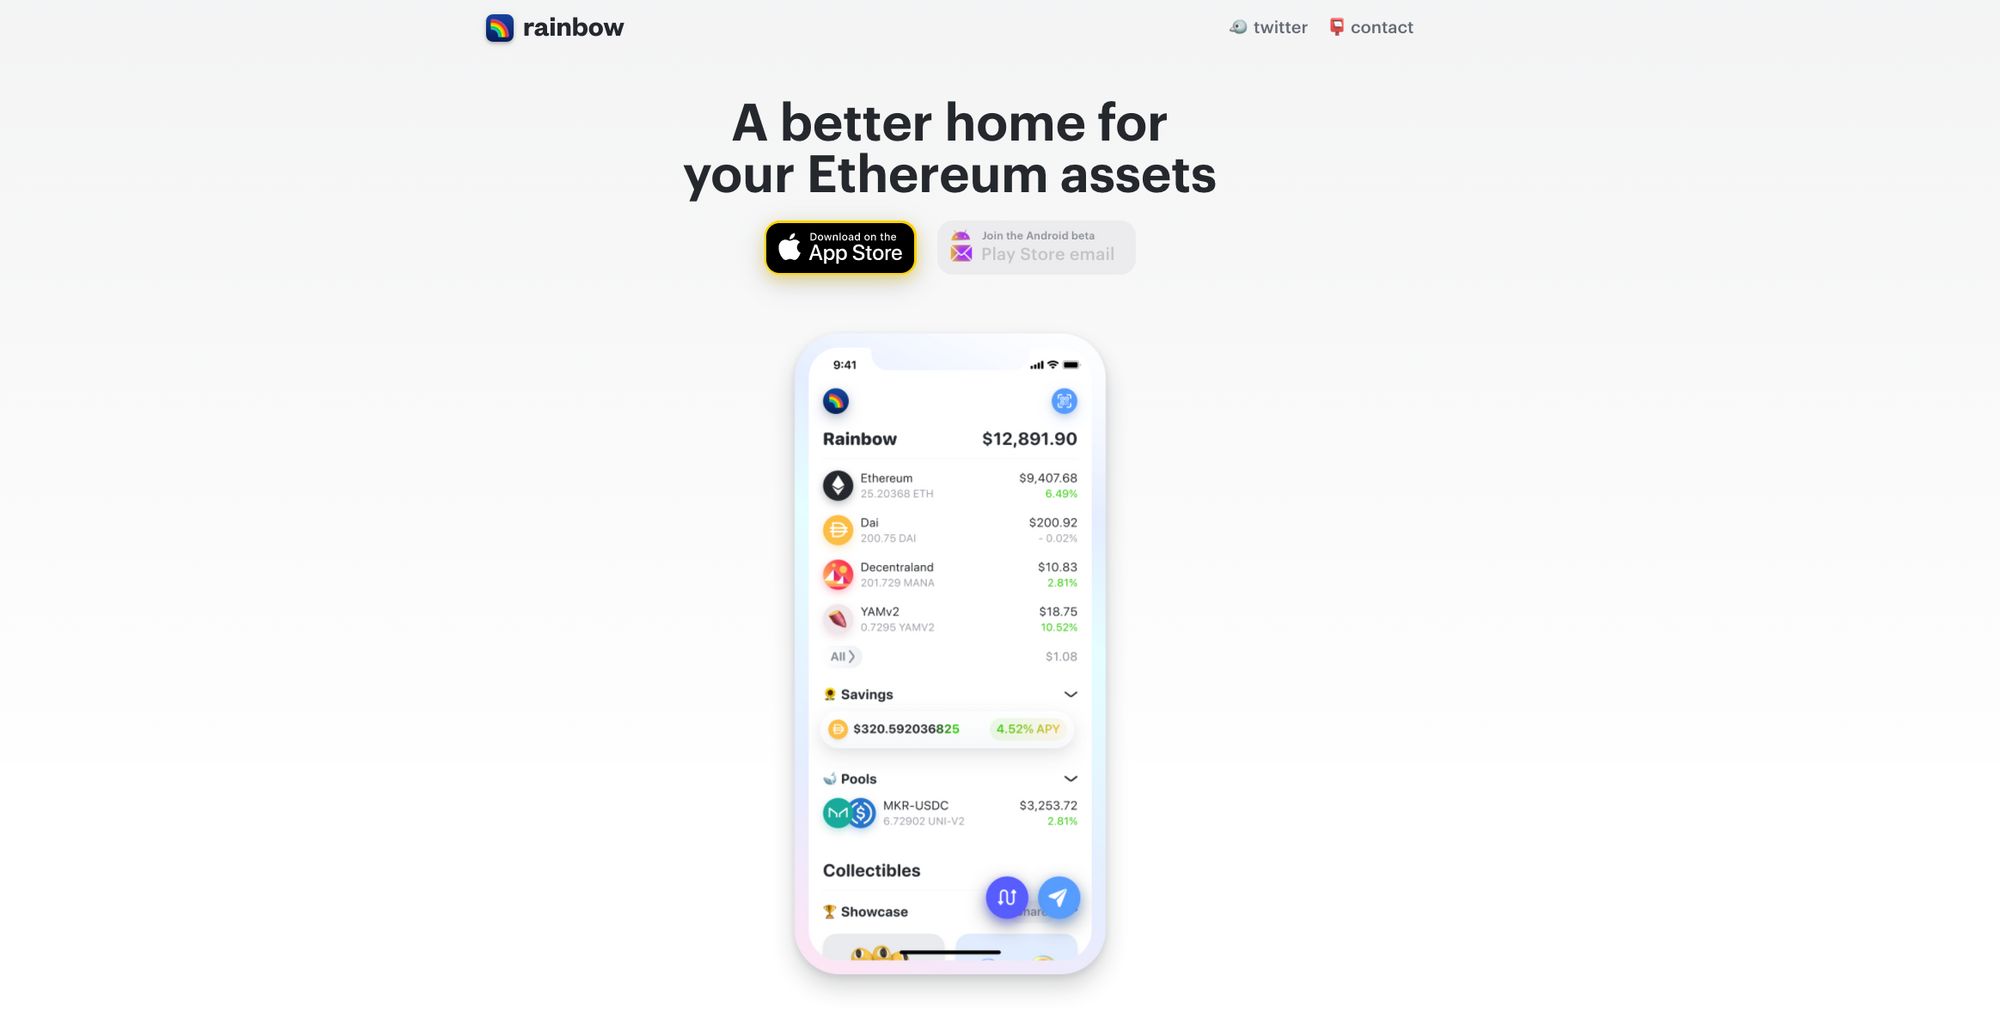 A marketing image for the Rainbow Ethereum wallet for iOS and Android